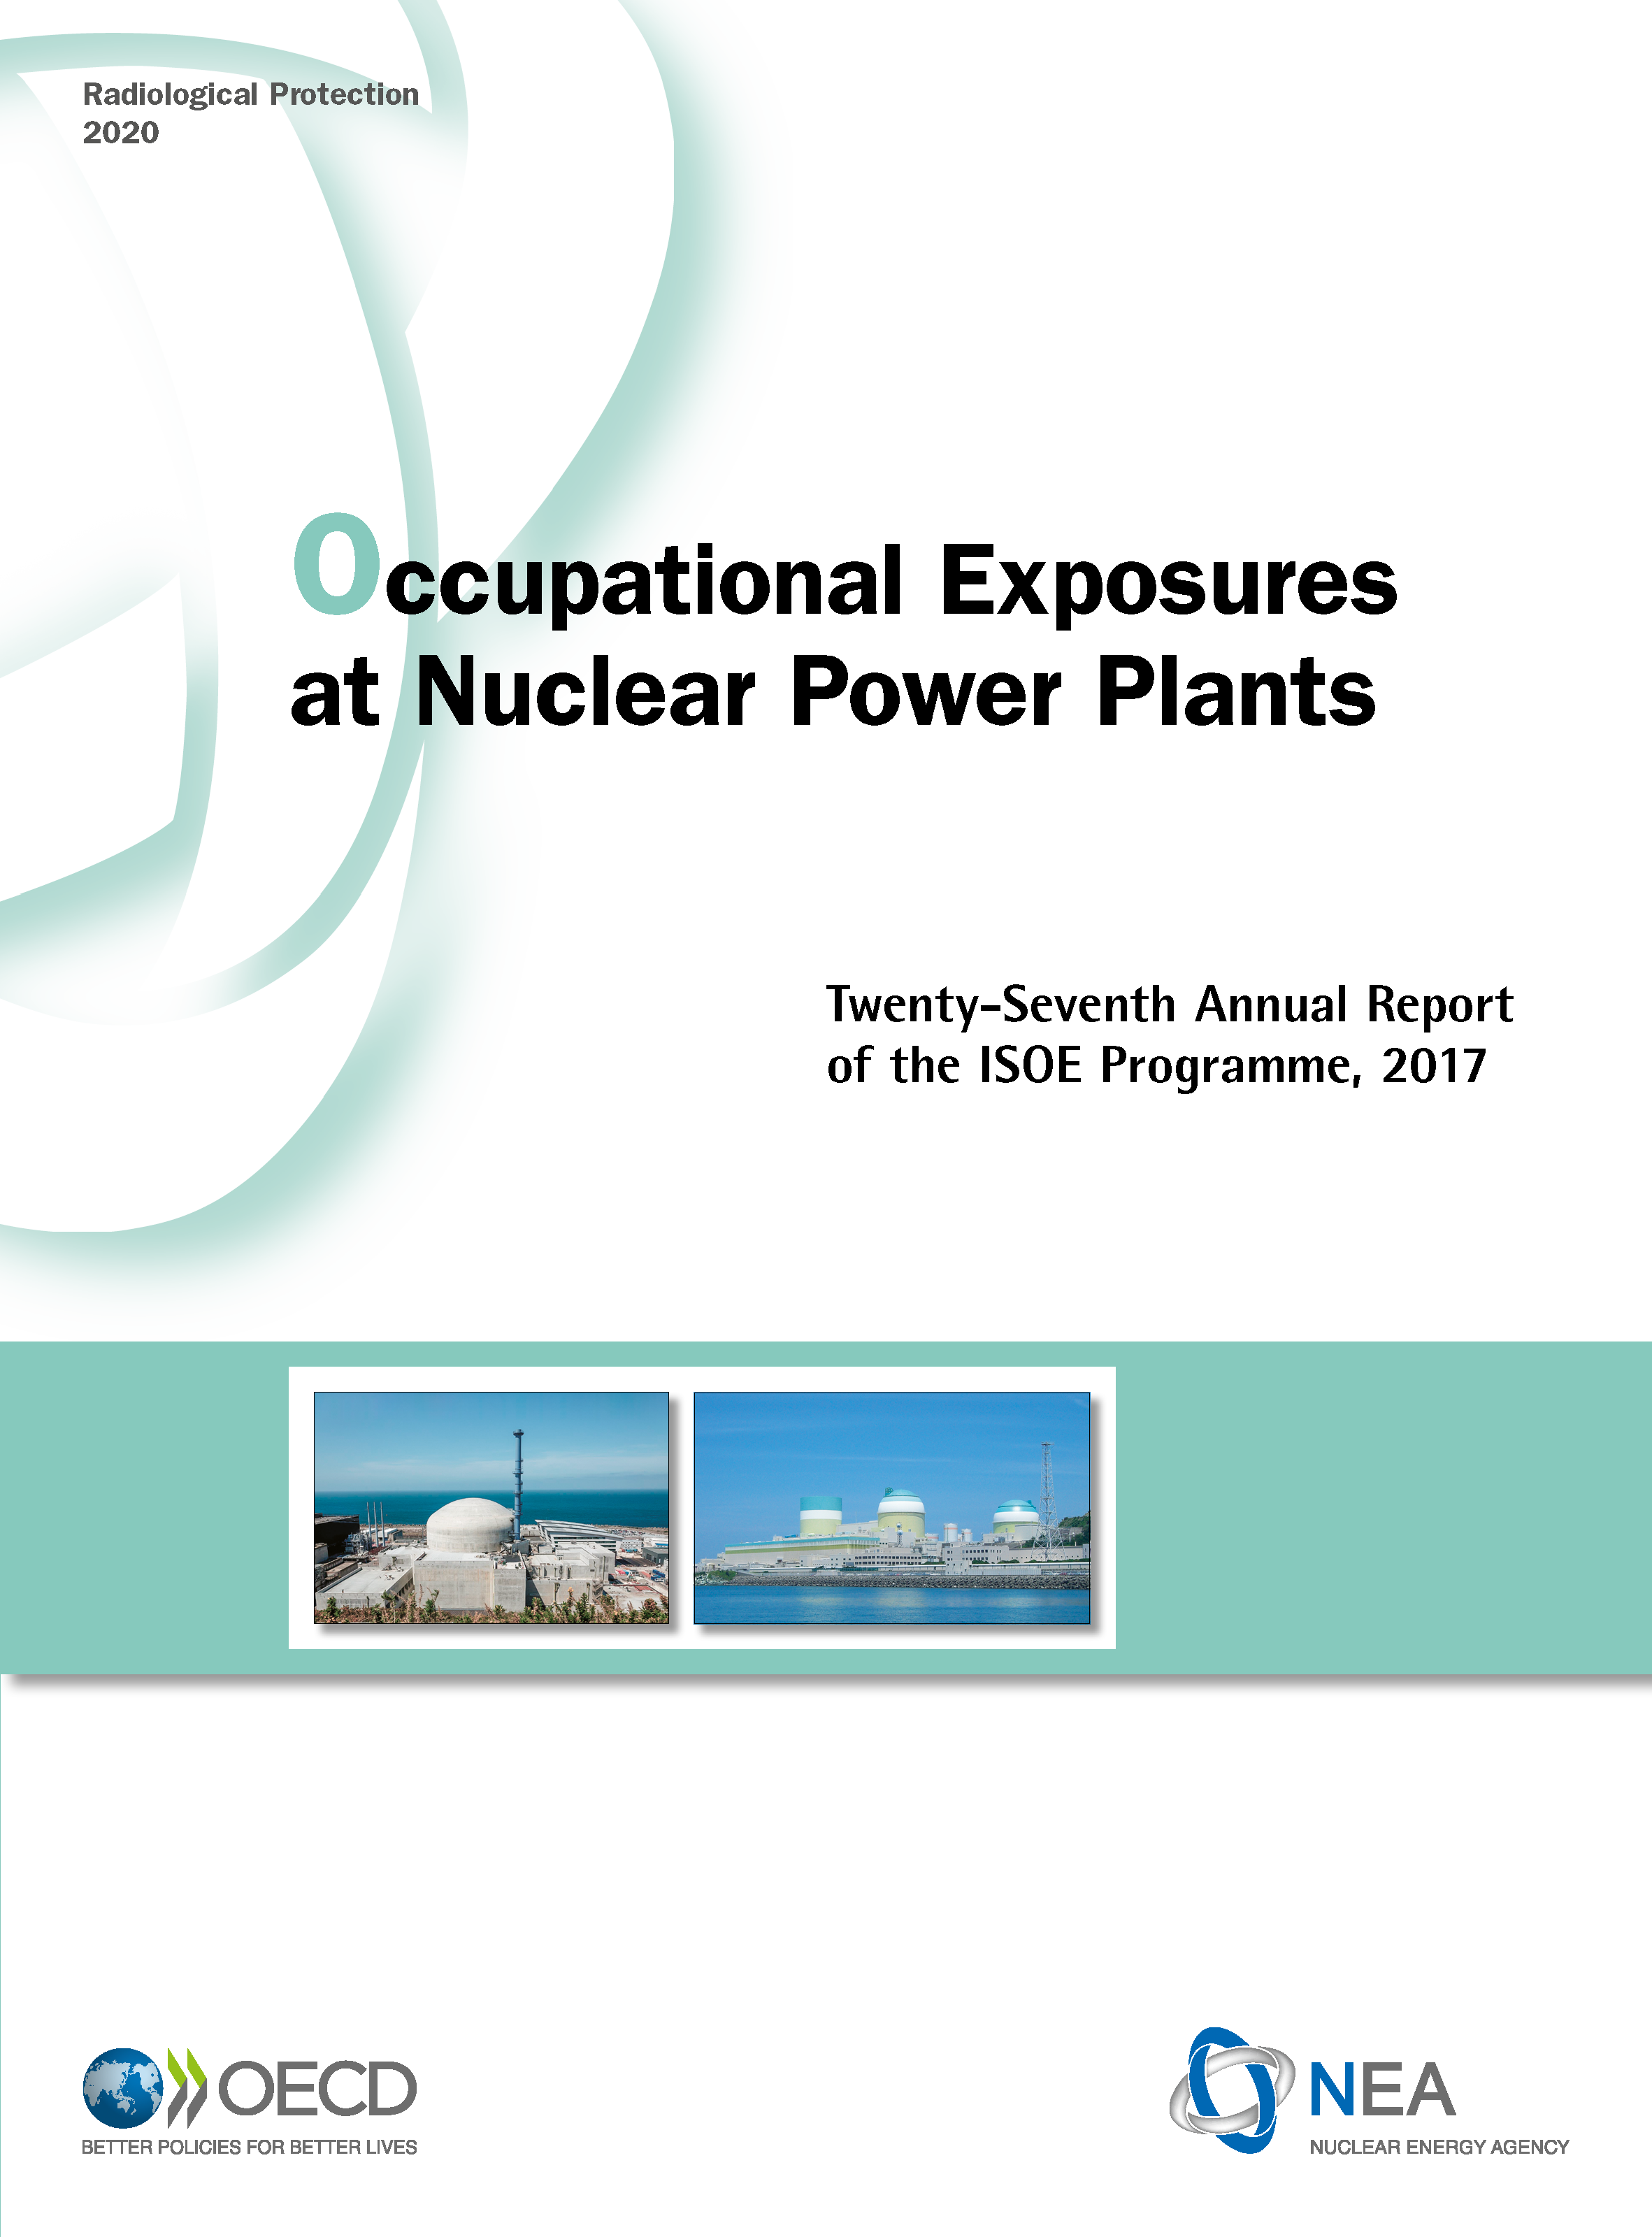 Occupational Exposures at Nuclear Power Plants Twenty-Seventh Annual Report of the ISOE Programme, 2017